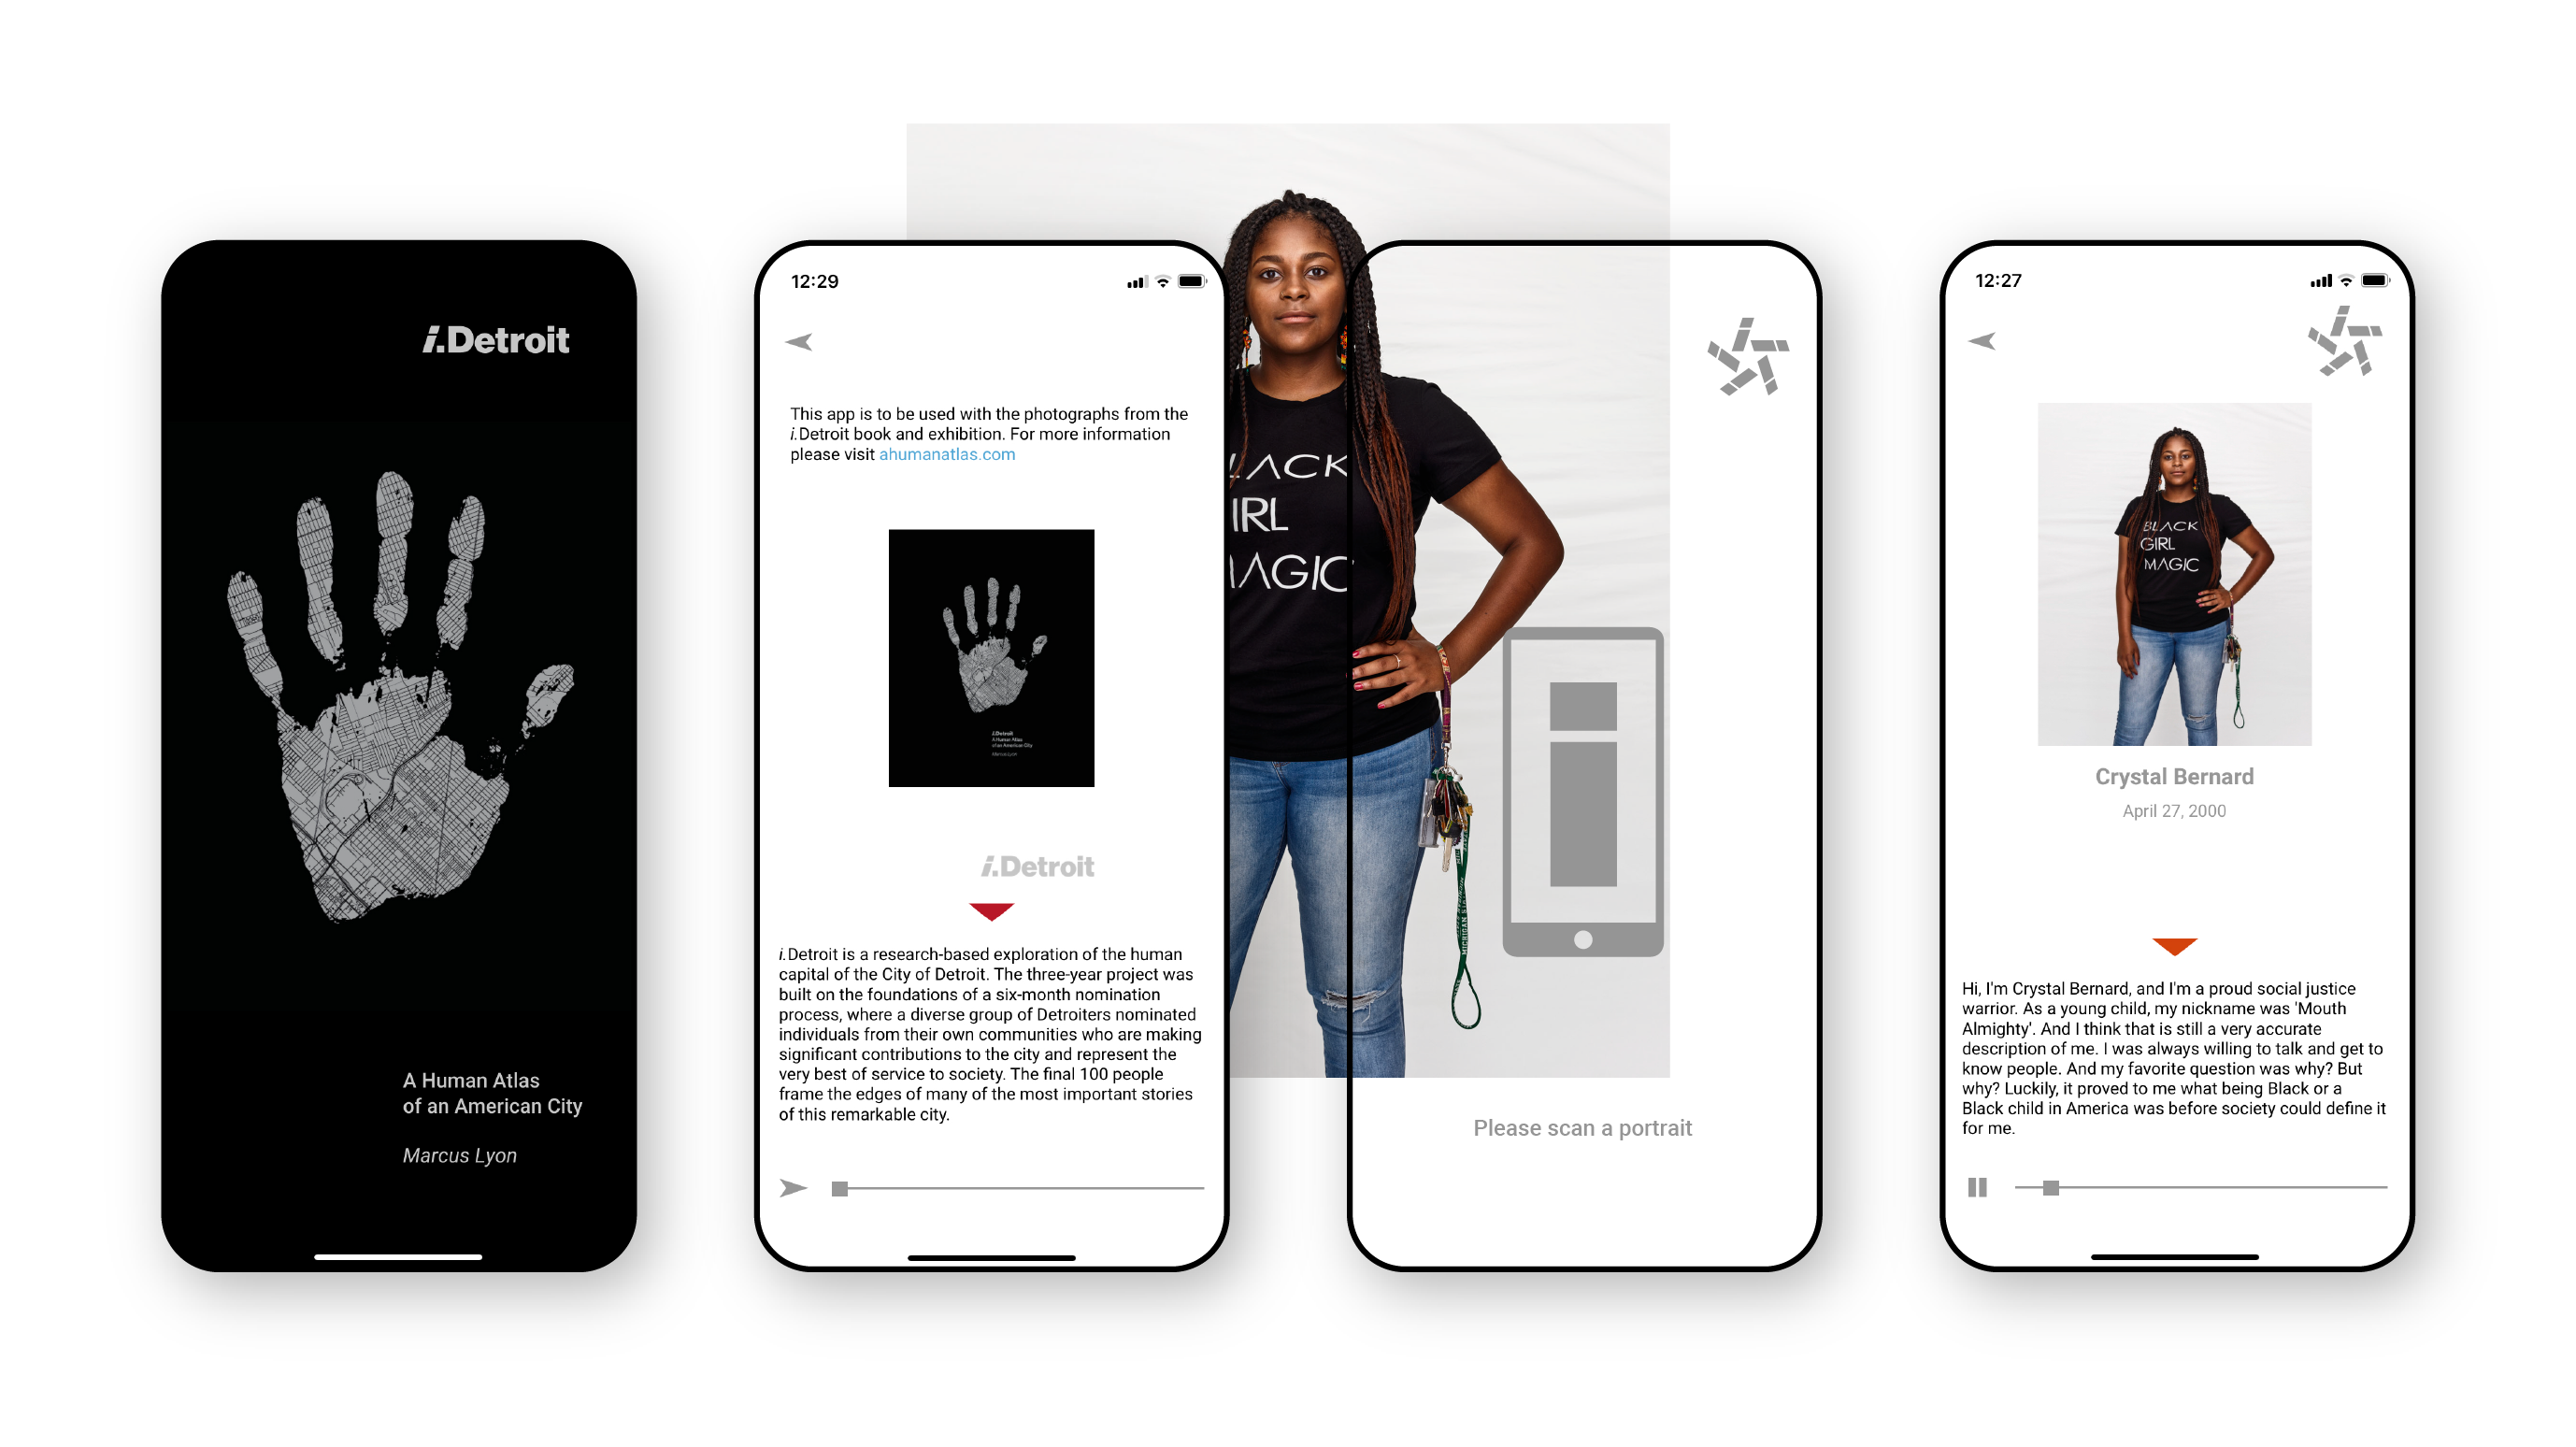 4 screens show the app interface: Screen 1 shows a silver handprint on a black background with the words i.detroit a human atlas of an american city. The second screen shows text from the interface, intrducing the project. The third screen shows how the app scans a portrait. The final screen shows the audio and story of a black woman in her 30s wearing a t-shirt that says 'black girl magic.'